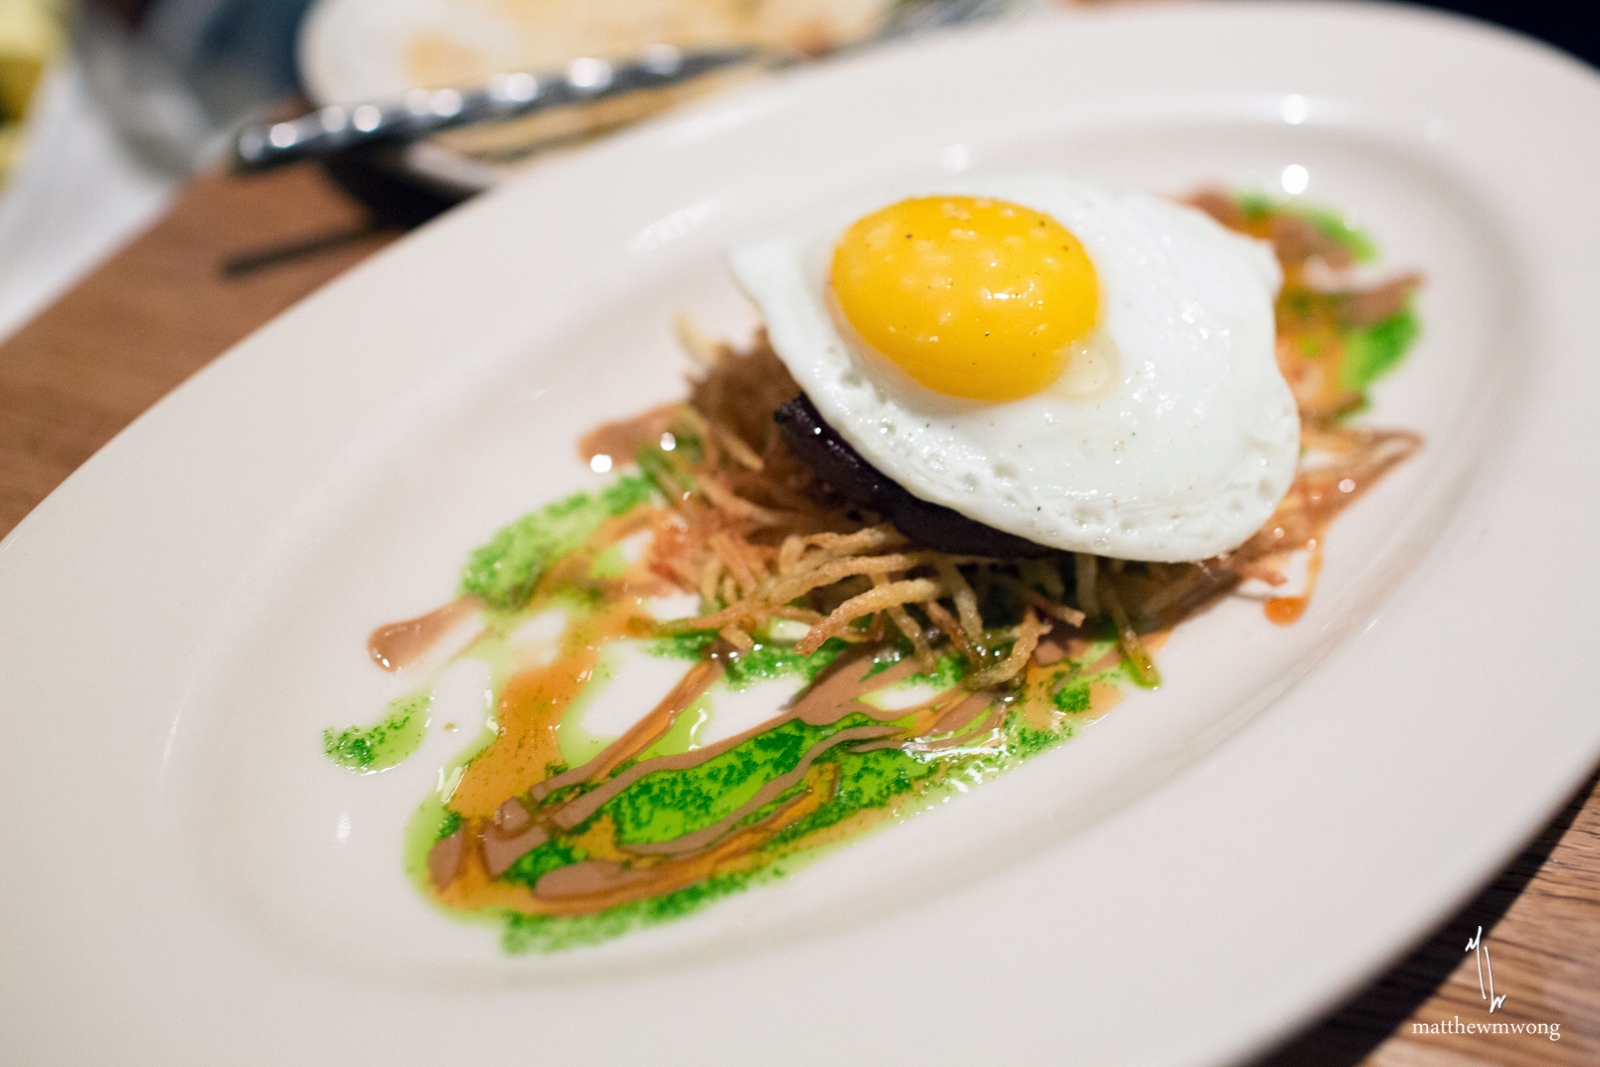 Wood oven roasted pig face, sunny side egg, tamarind, cilantro, red wine maple, potato stix